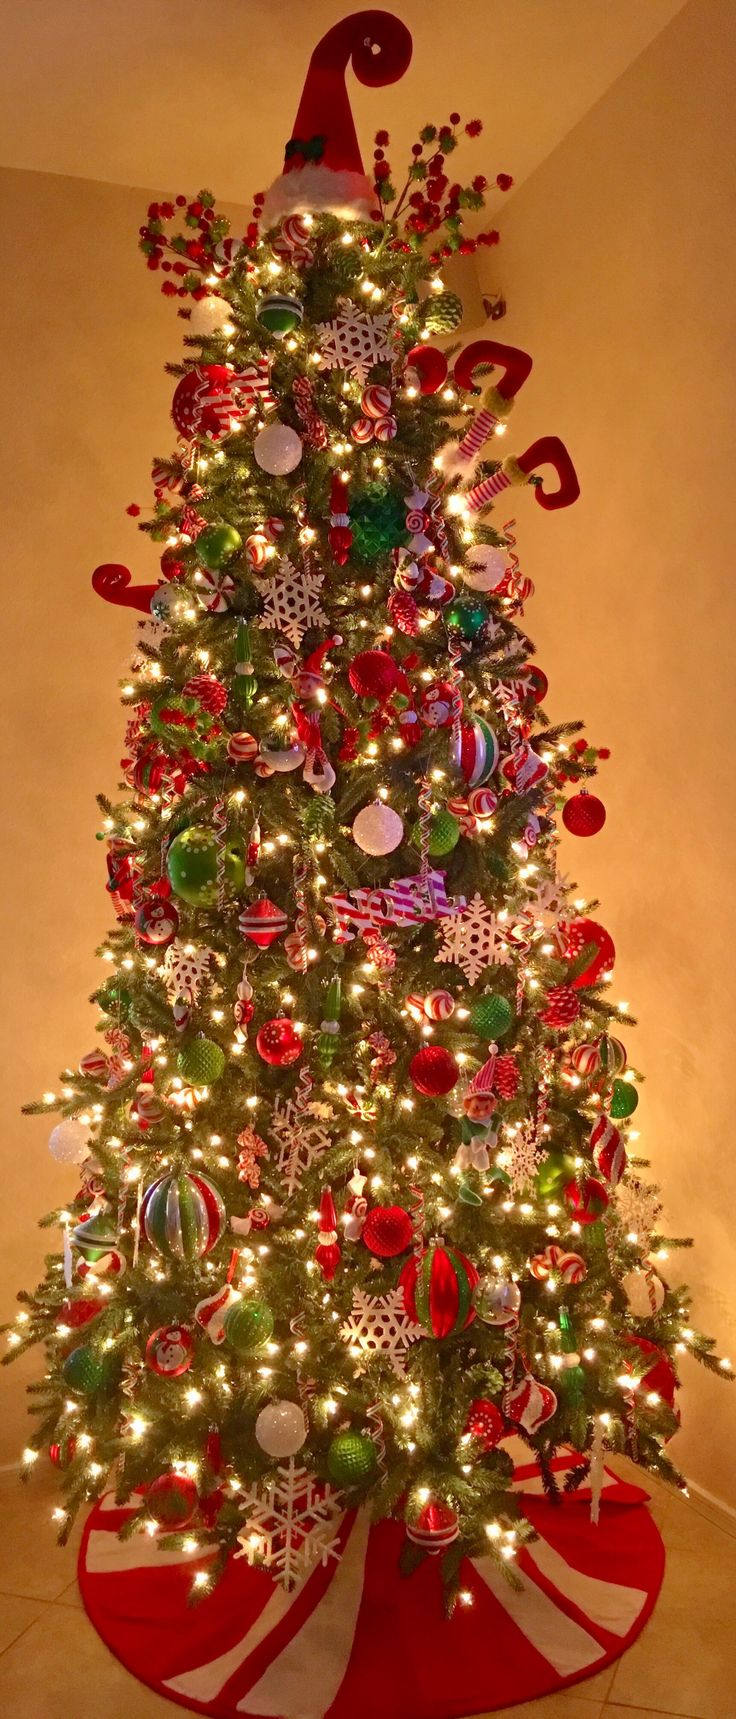 Modern metal christmas tree - Christmas Tree 2016 Whimsical Tree Sweet Holiday Pier One Hobby Lobby